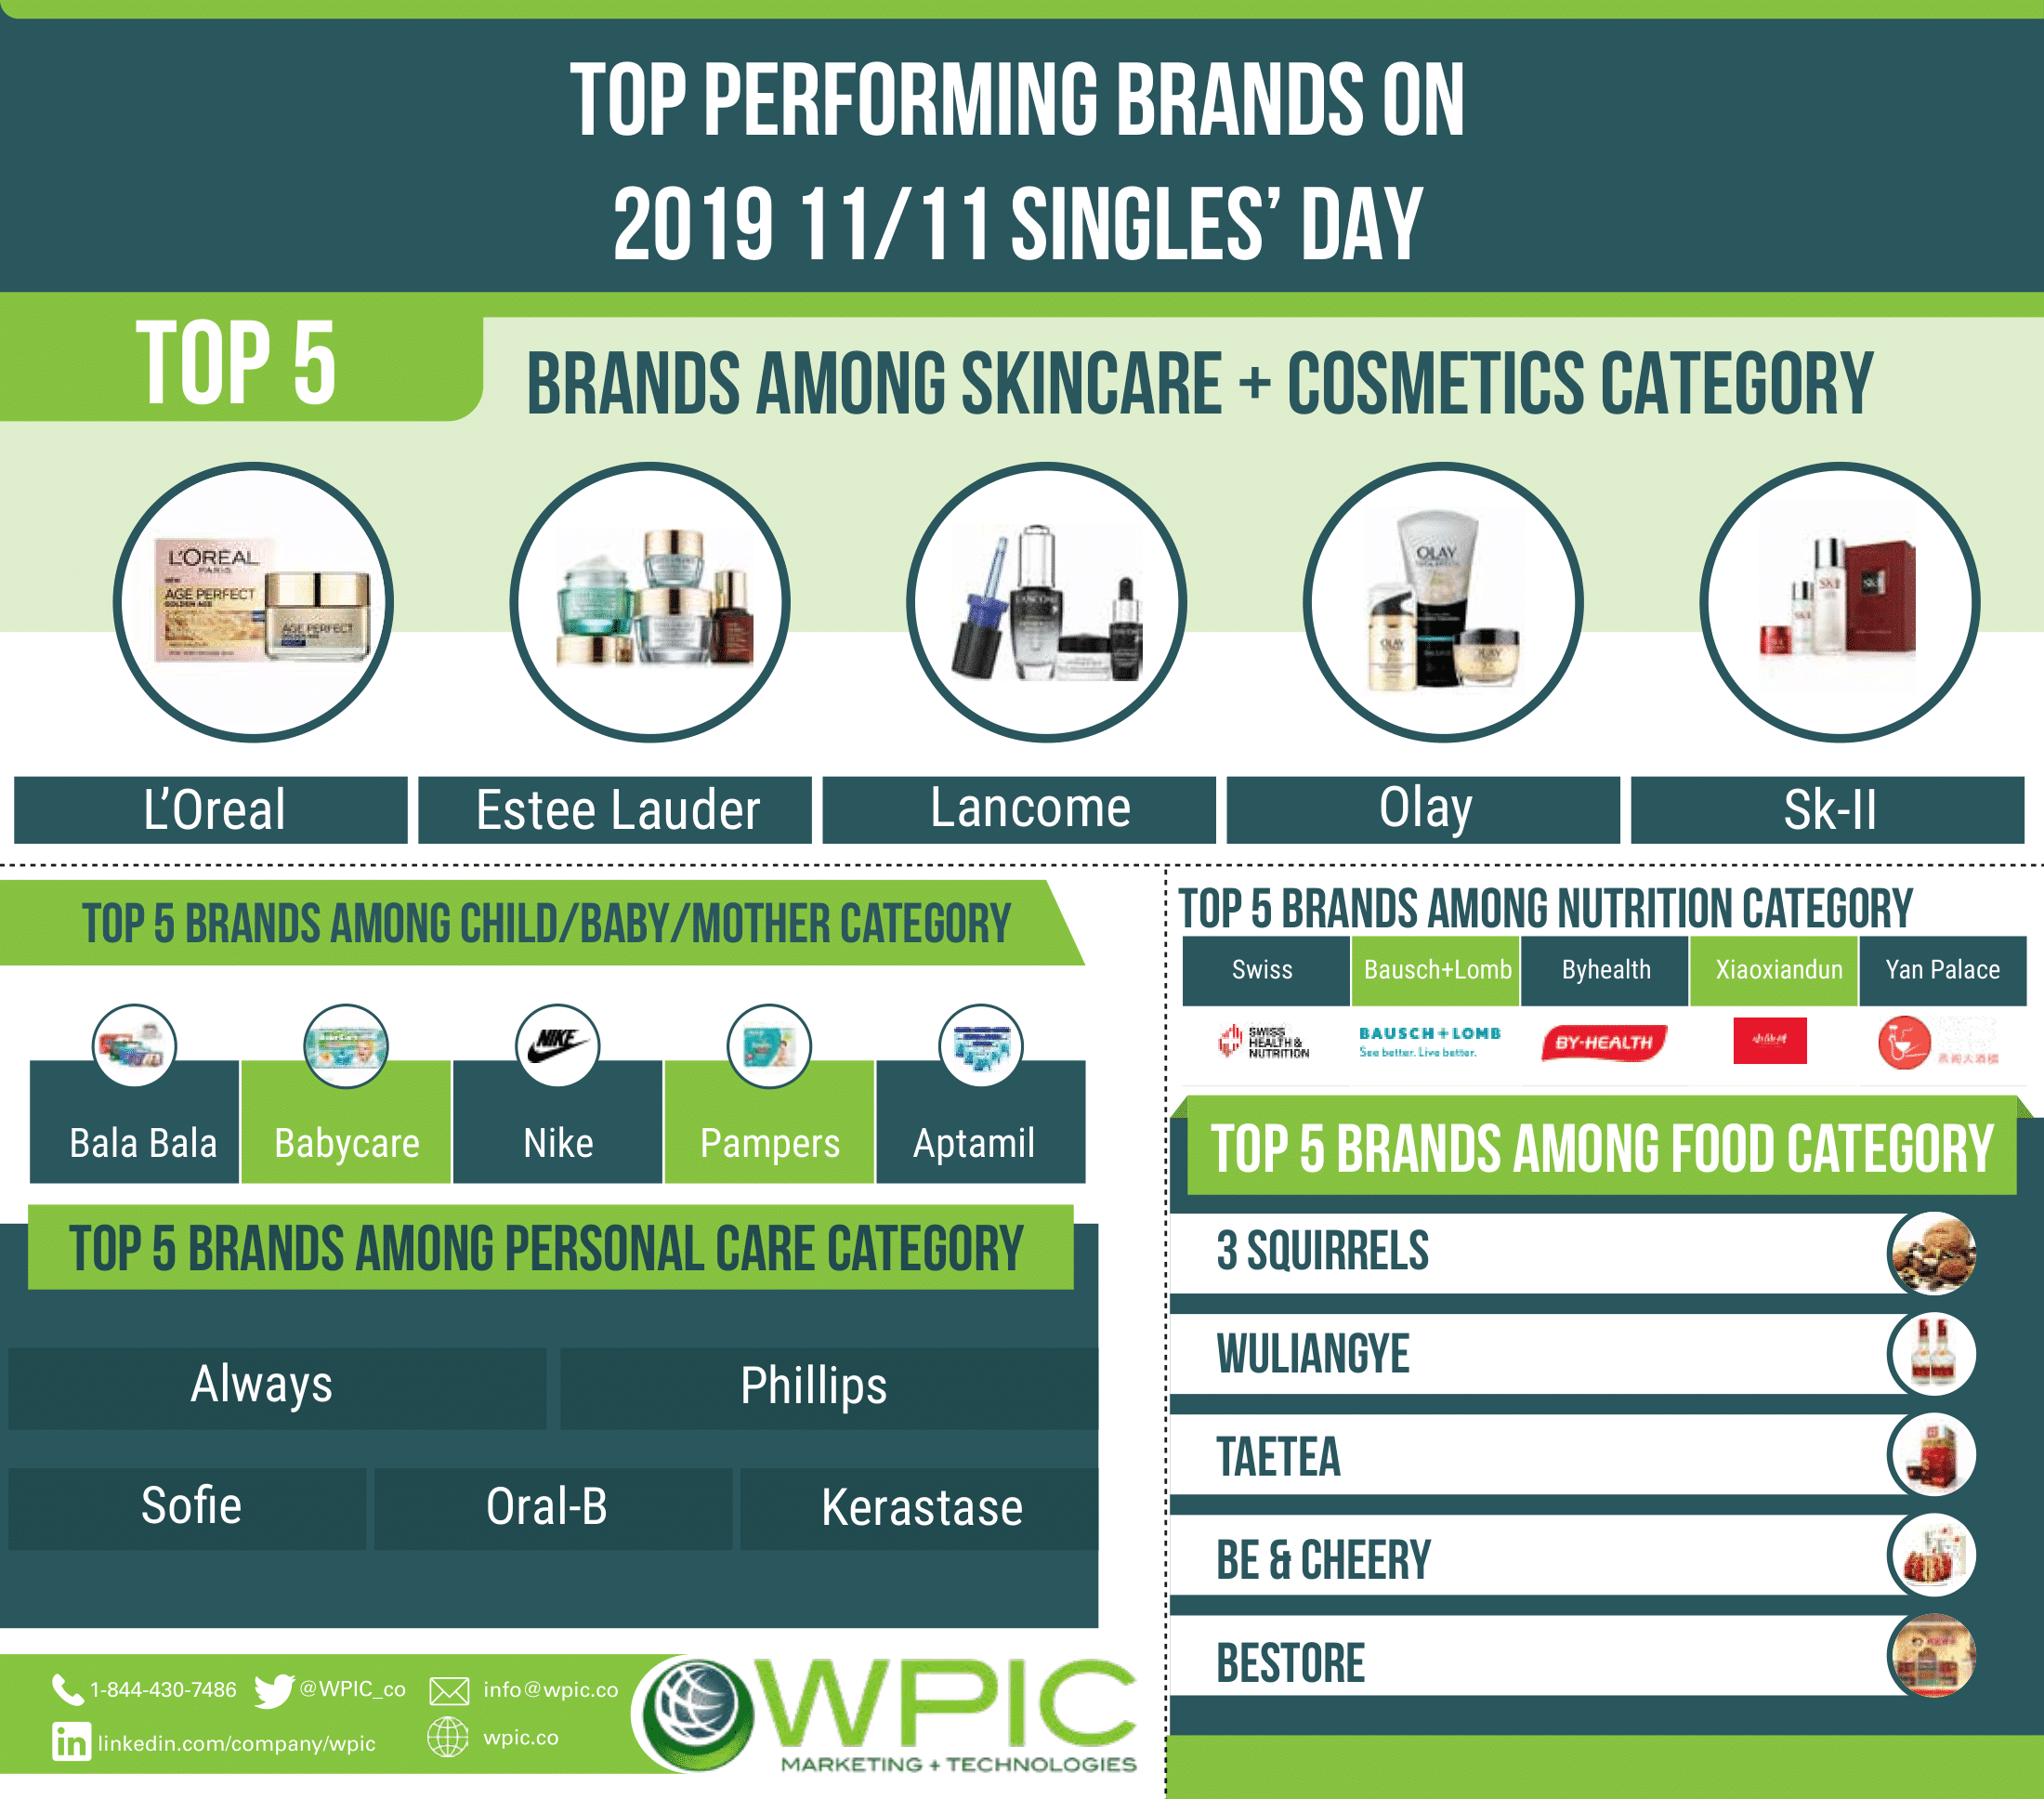 Top performing brands on 2019 11/11 Singles' Day infographic